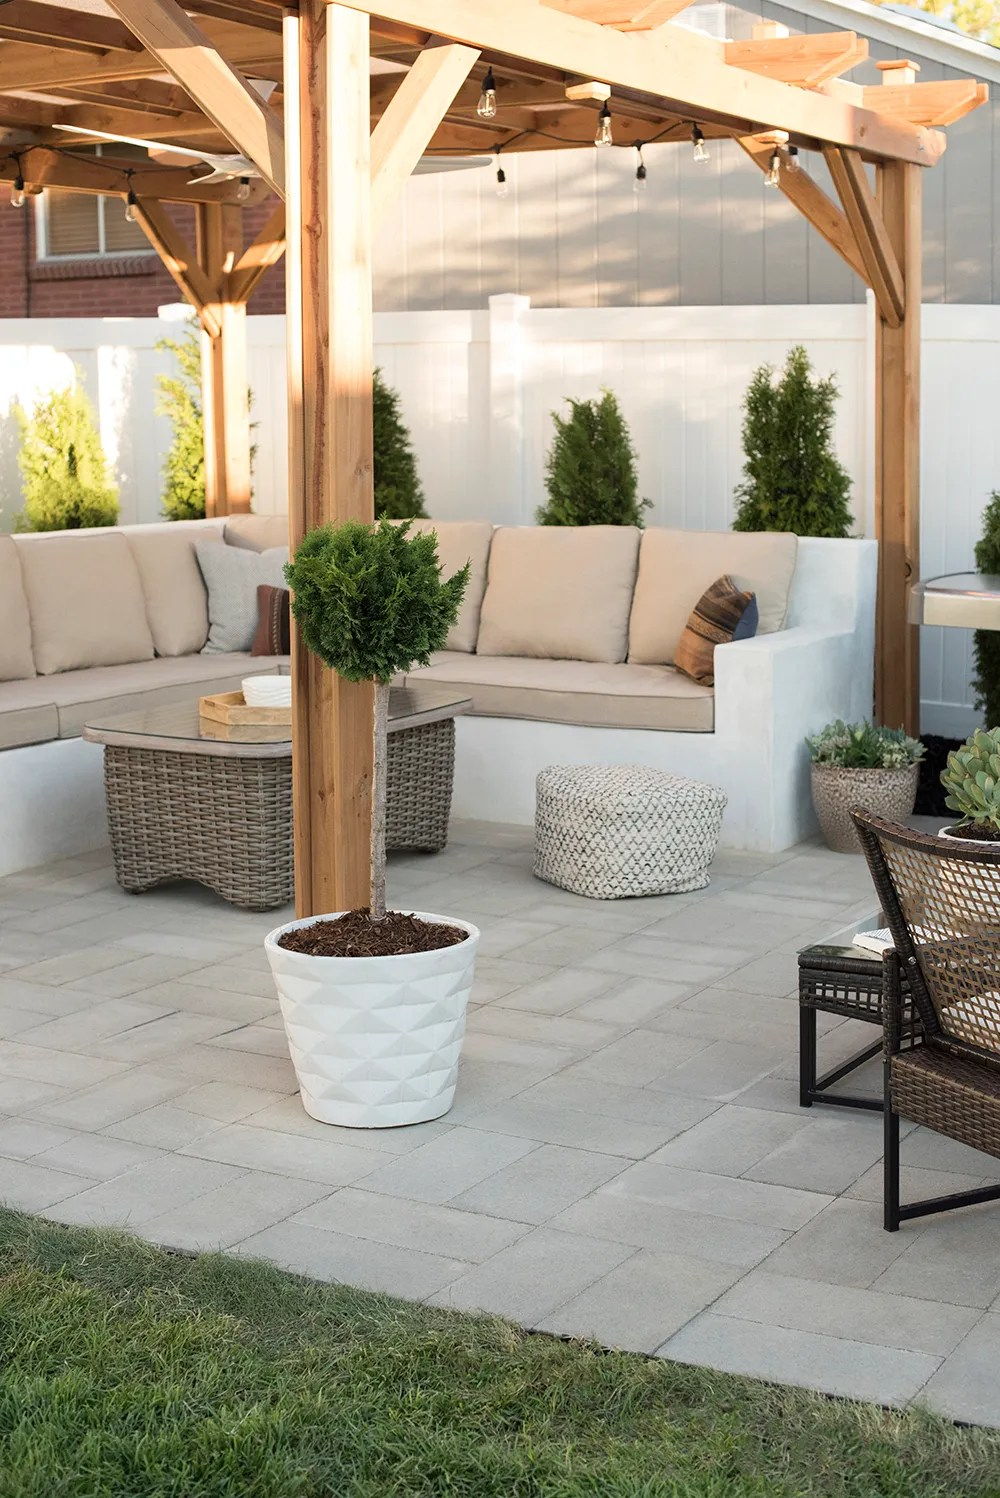 How to Install A Custom Paver Patio - Room for Tuesday Blog